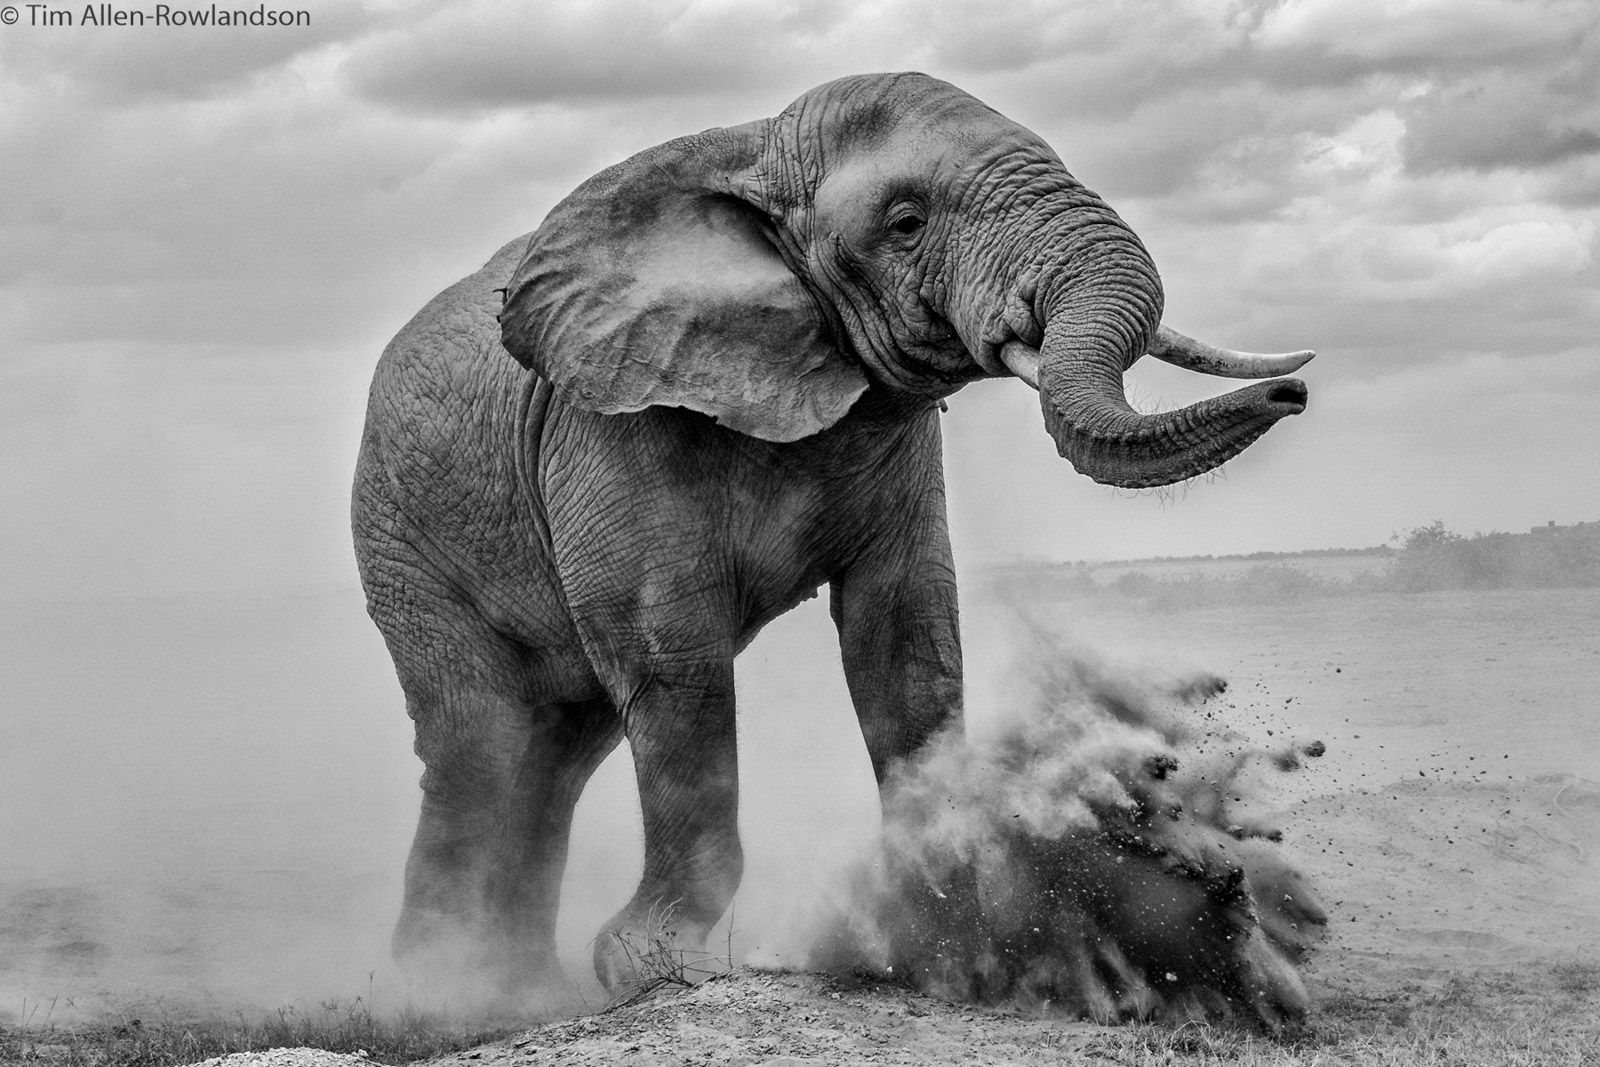 Bull elephant making his presence known, Amboseli